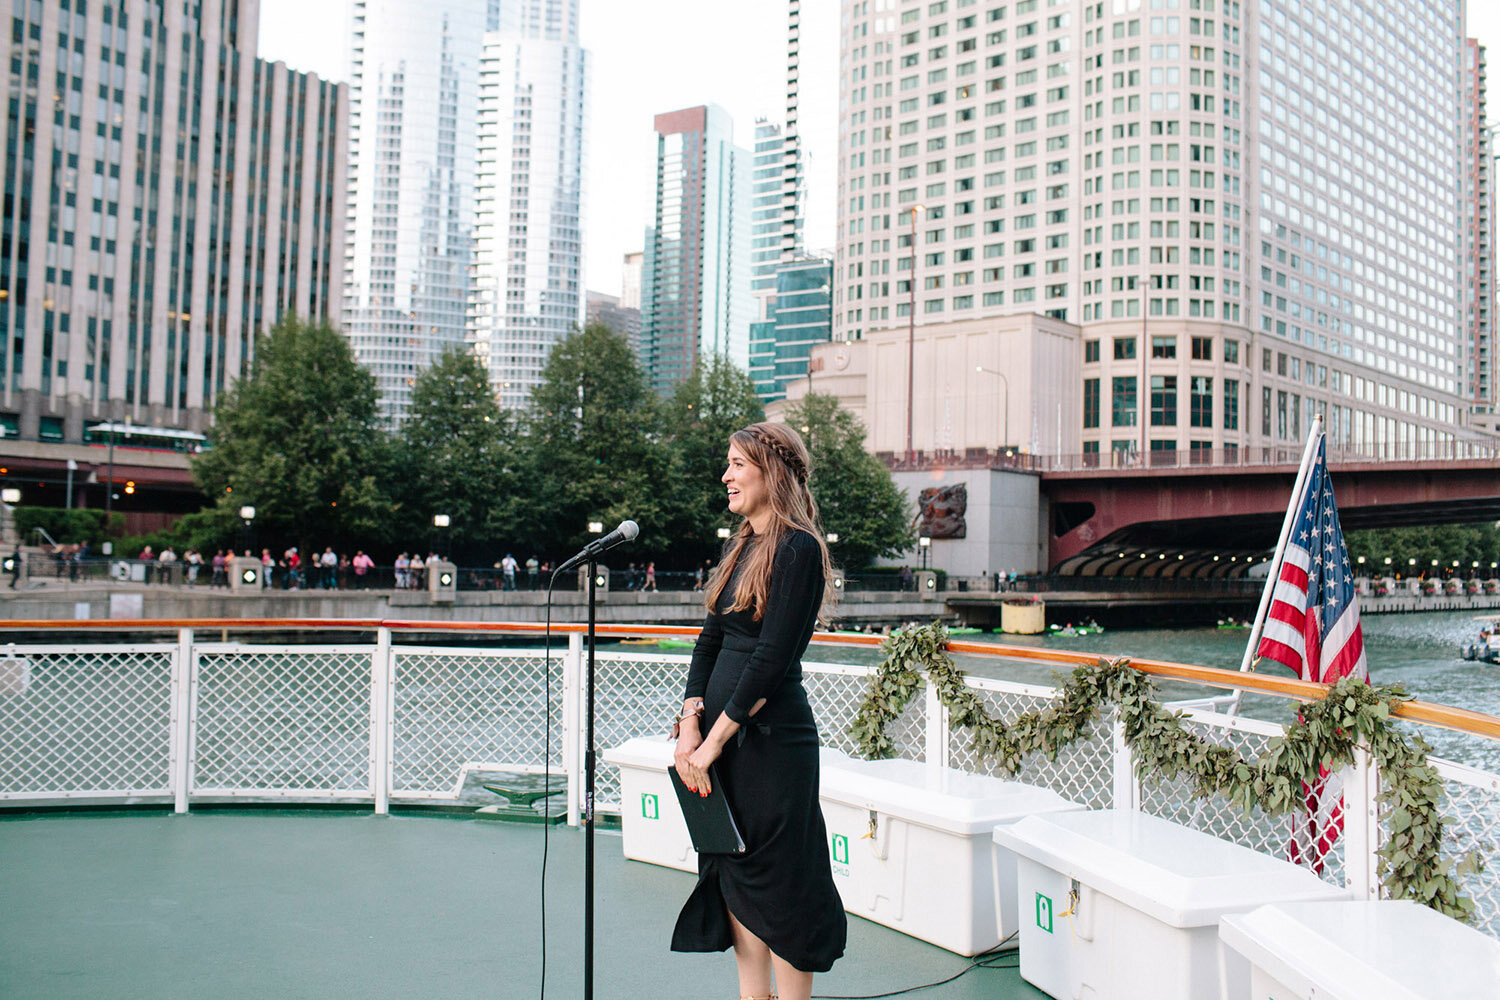 wedding-officiant-on-chicagos-leading-lady-boat.jpg